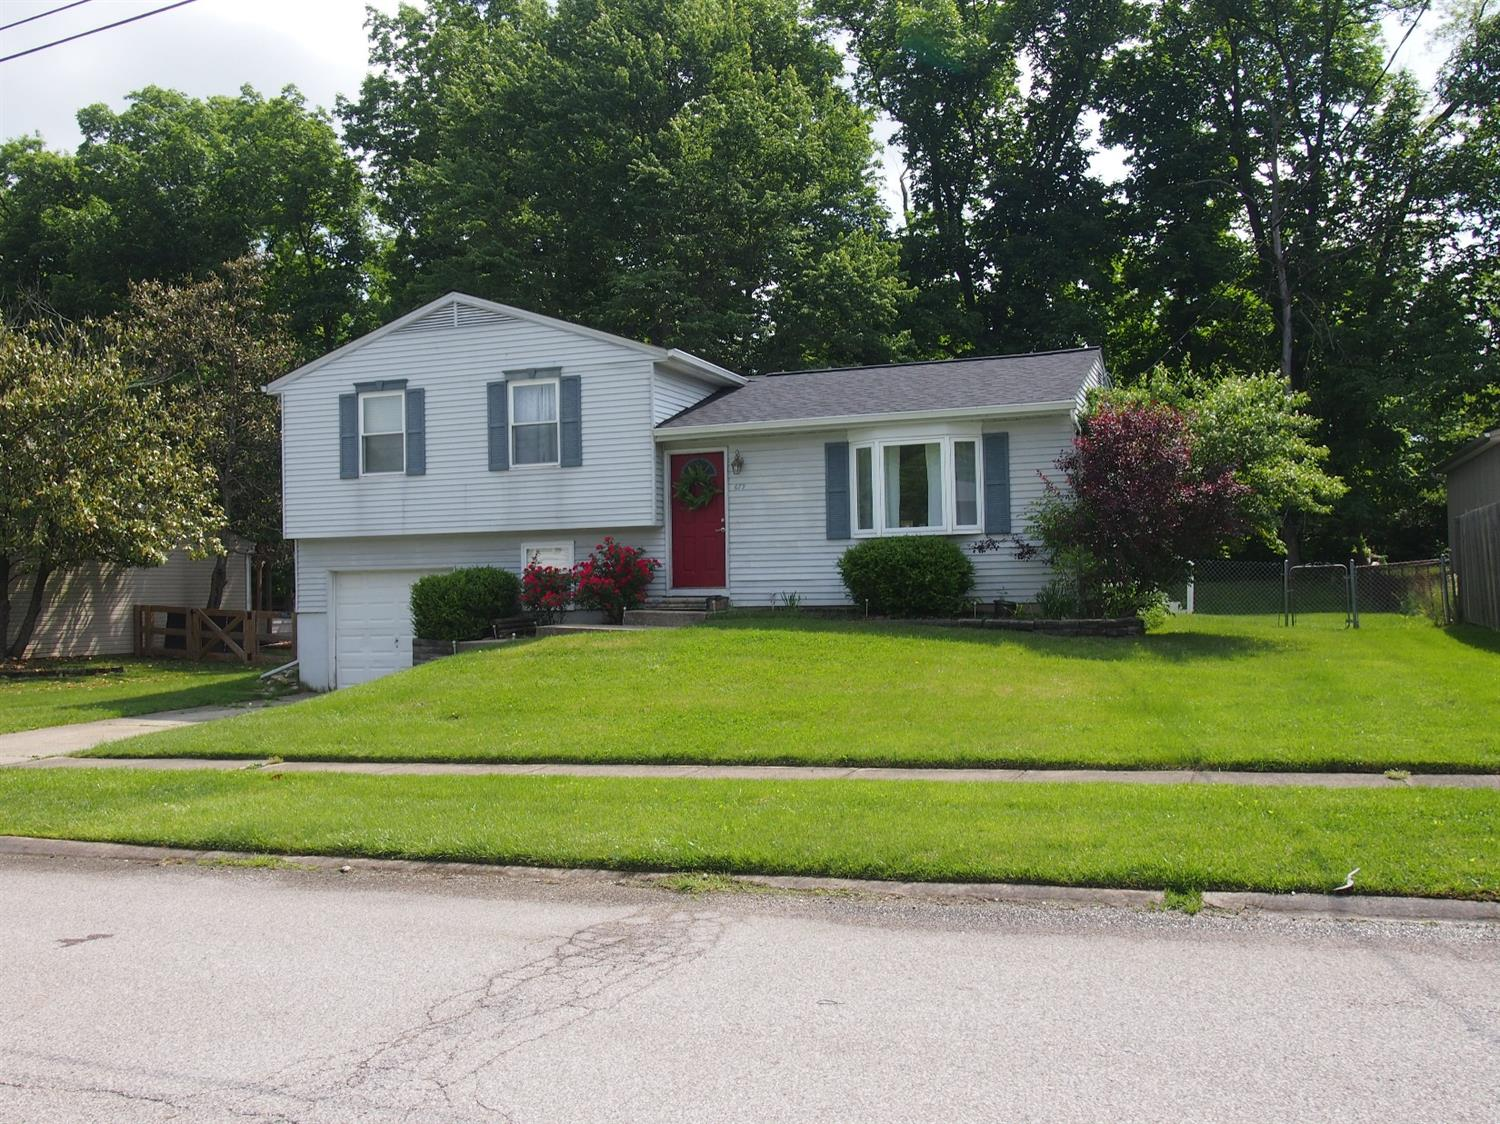 679 Holiday Dr Union Twp. (Clermont), OH